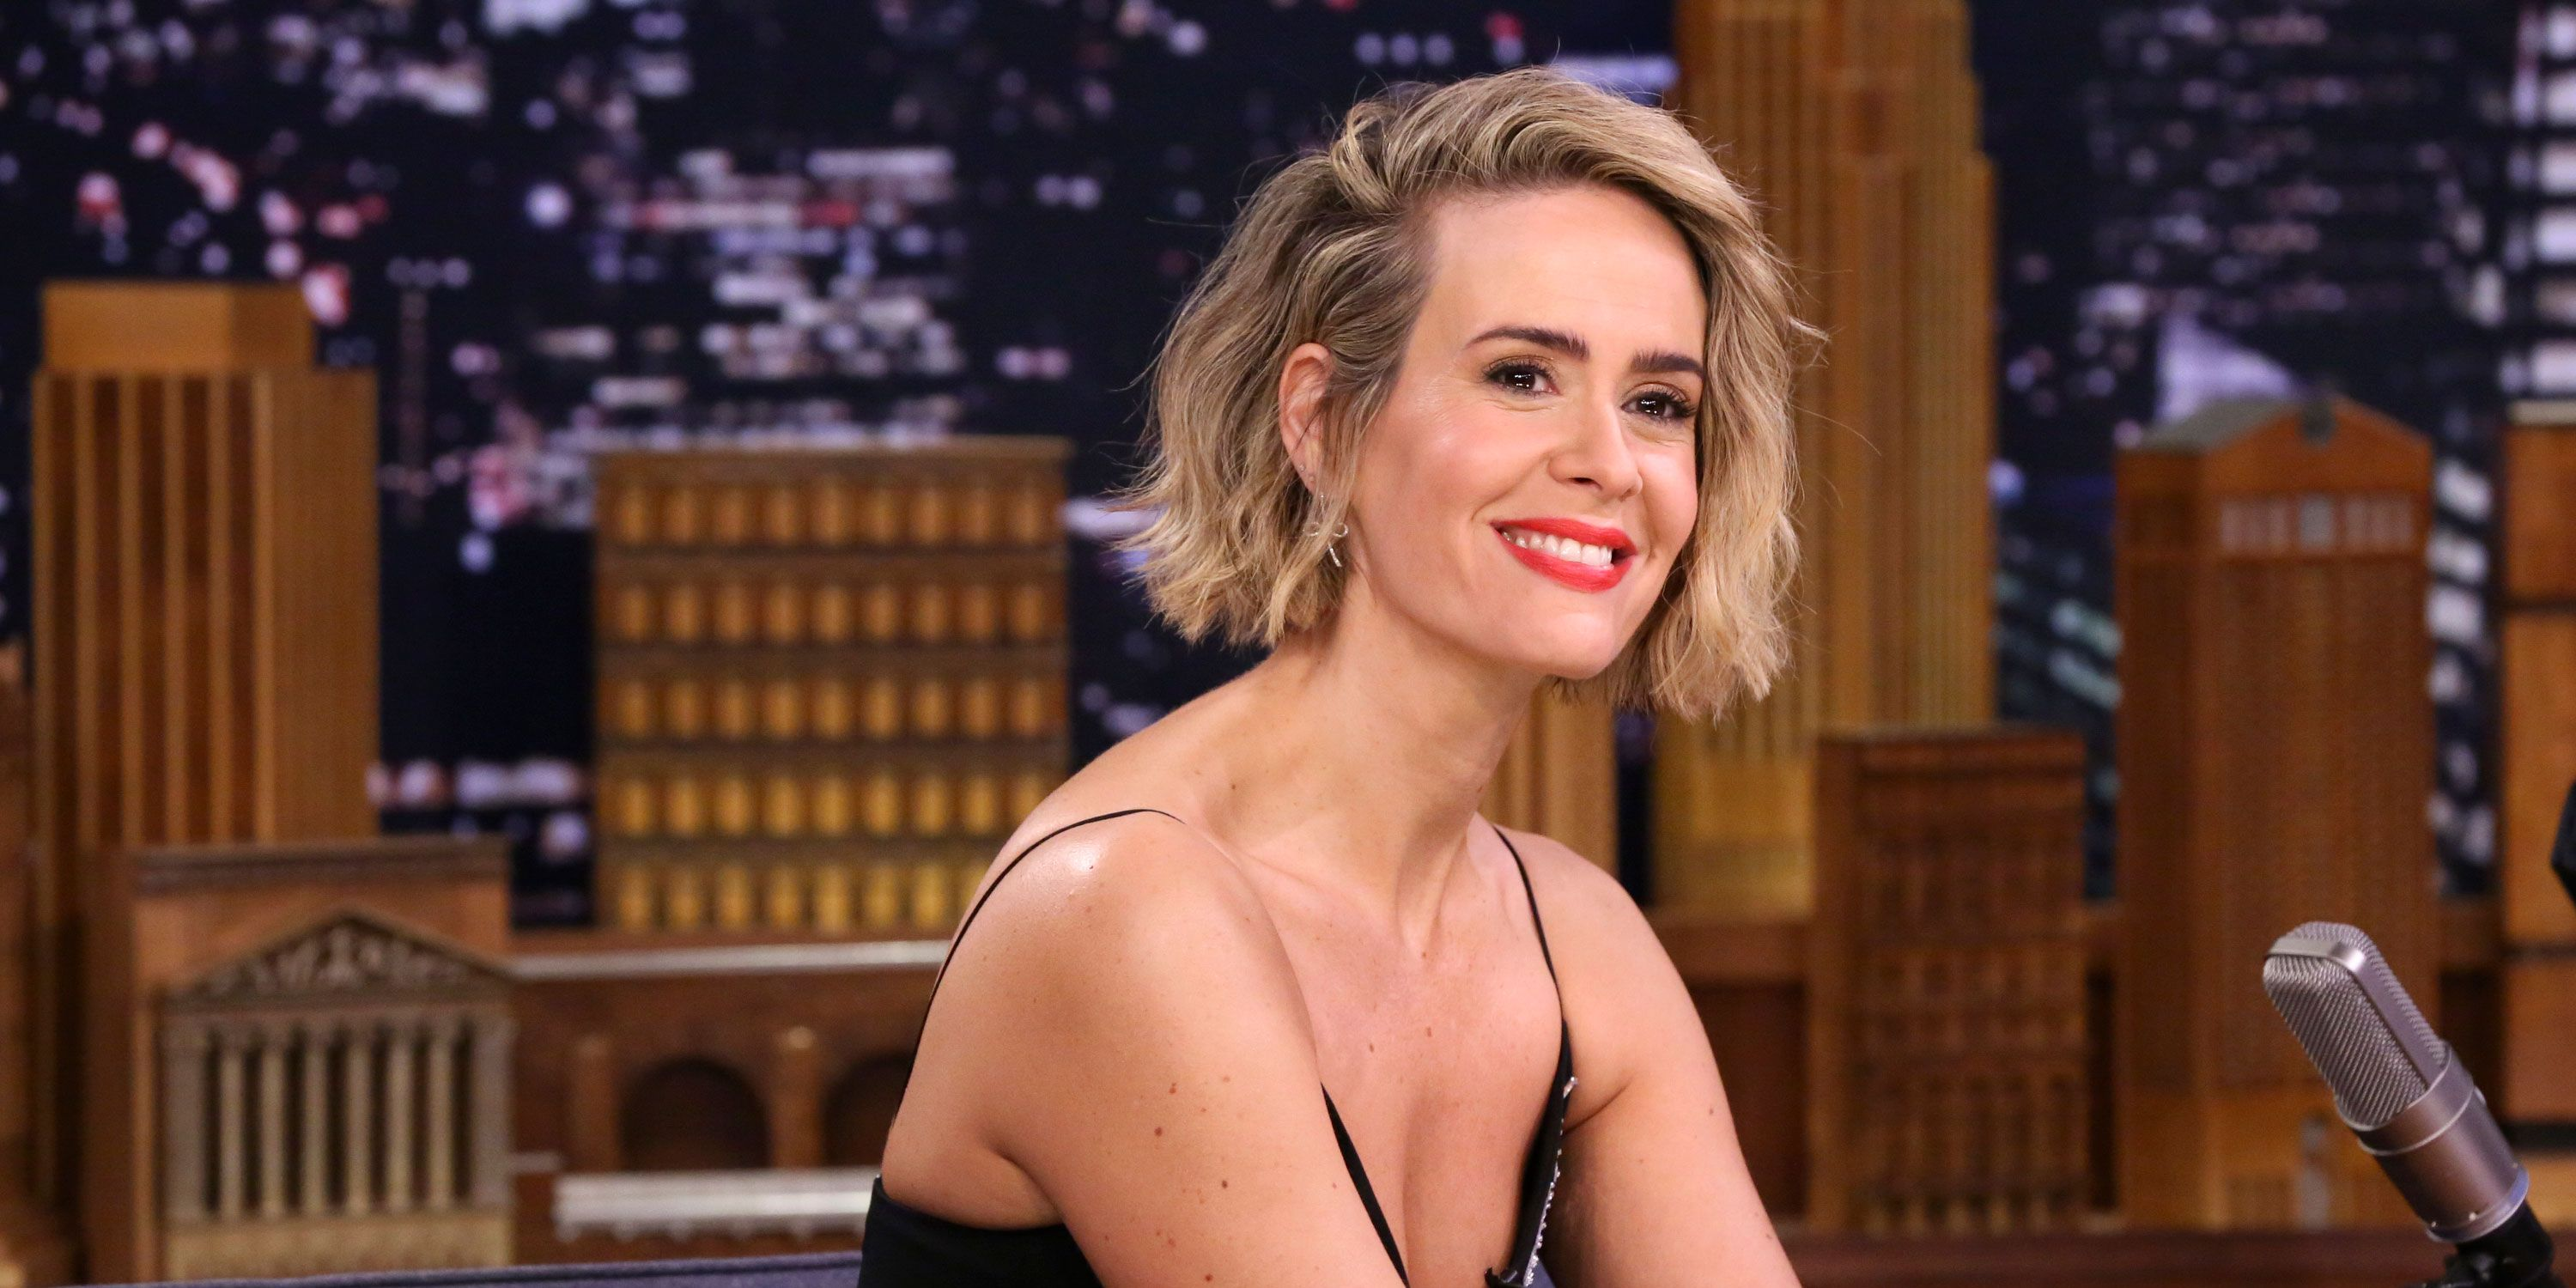 """Sarah Paulson: """"I'm 44 years old and I'm not just playing someone's mother or wife"""""""